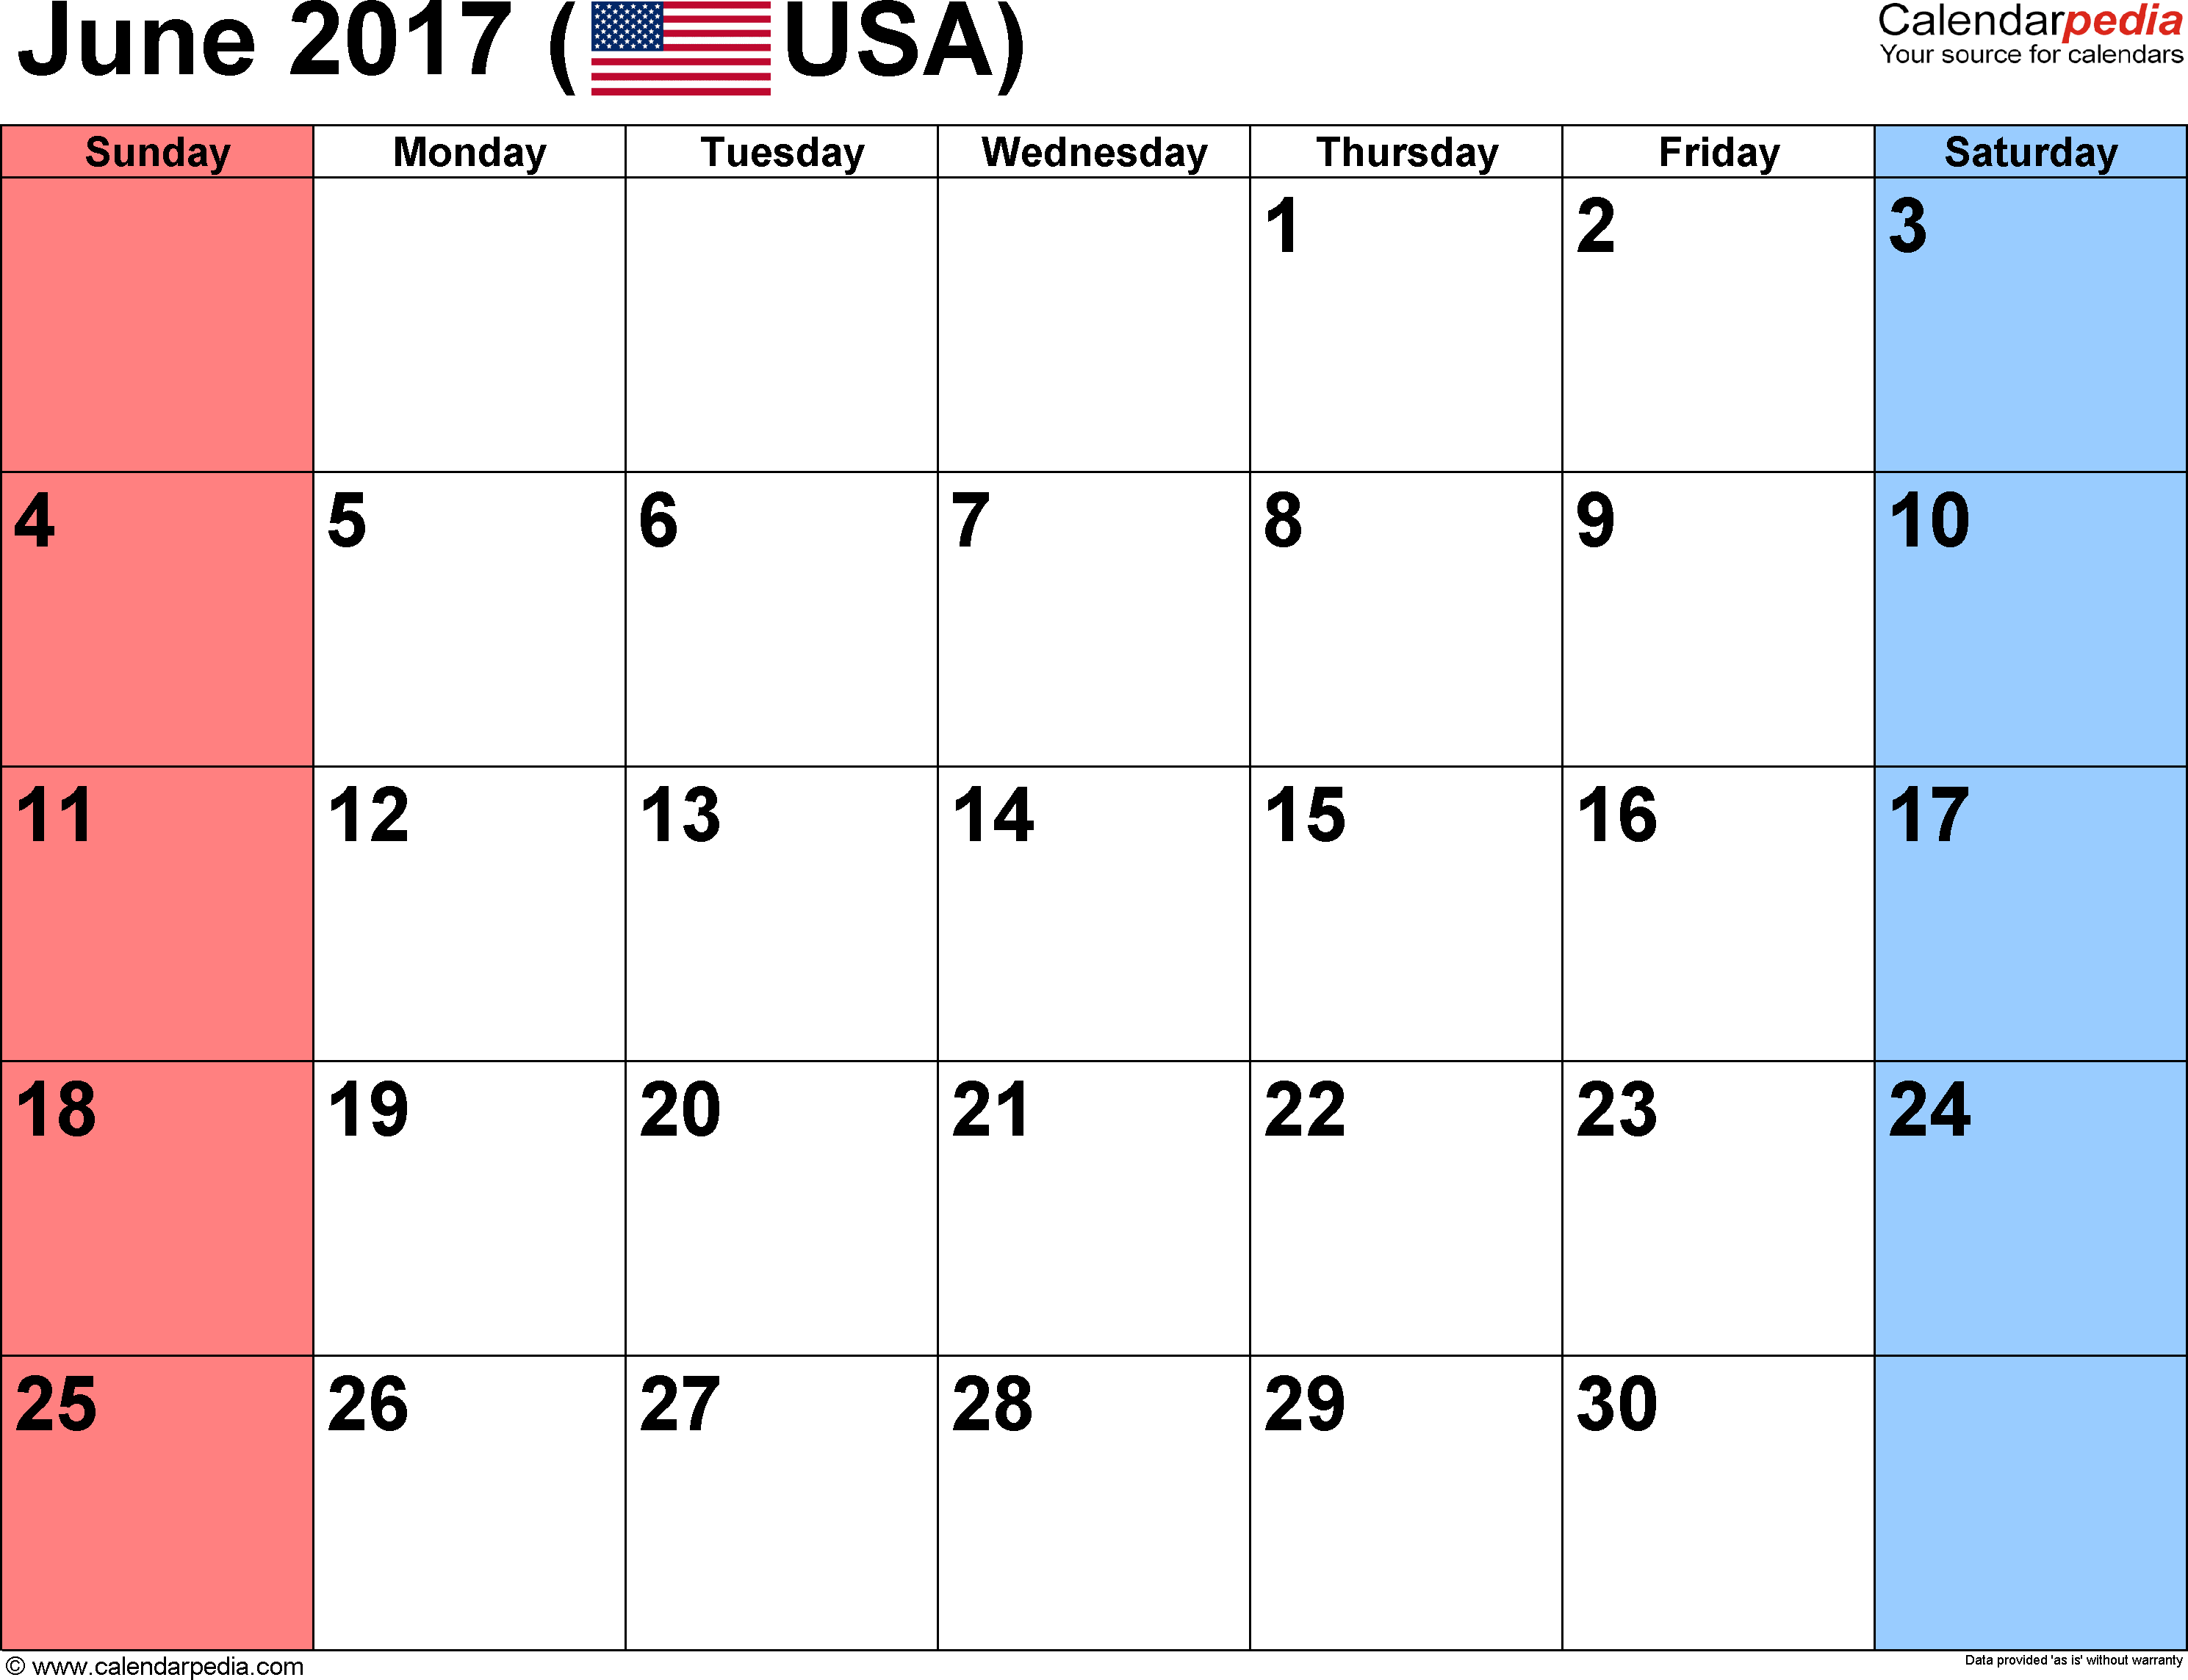 June 2017 Calendars for Word, Excel & PDF